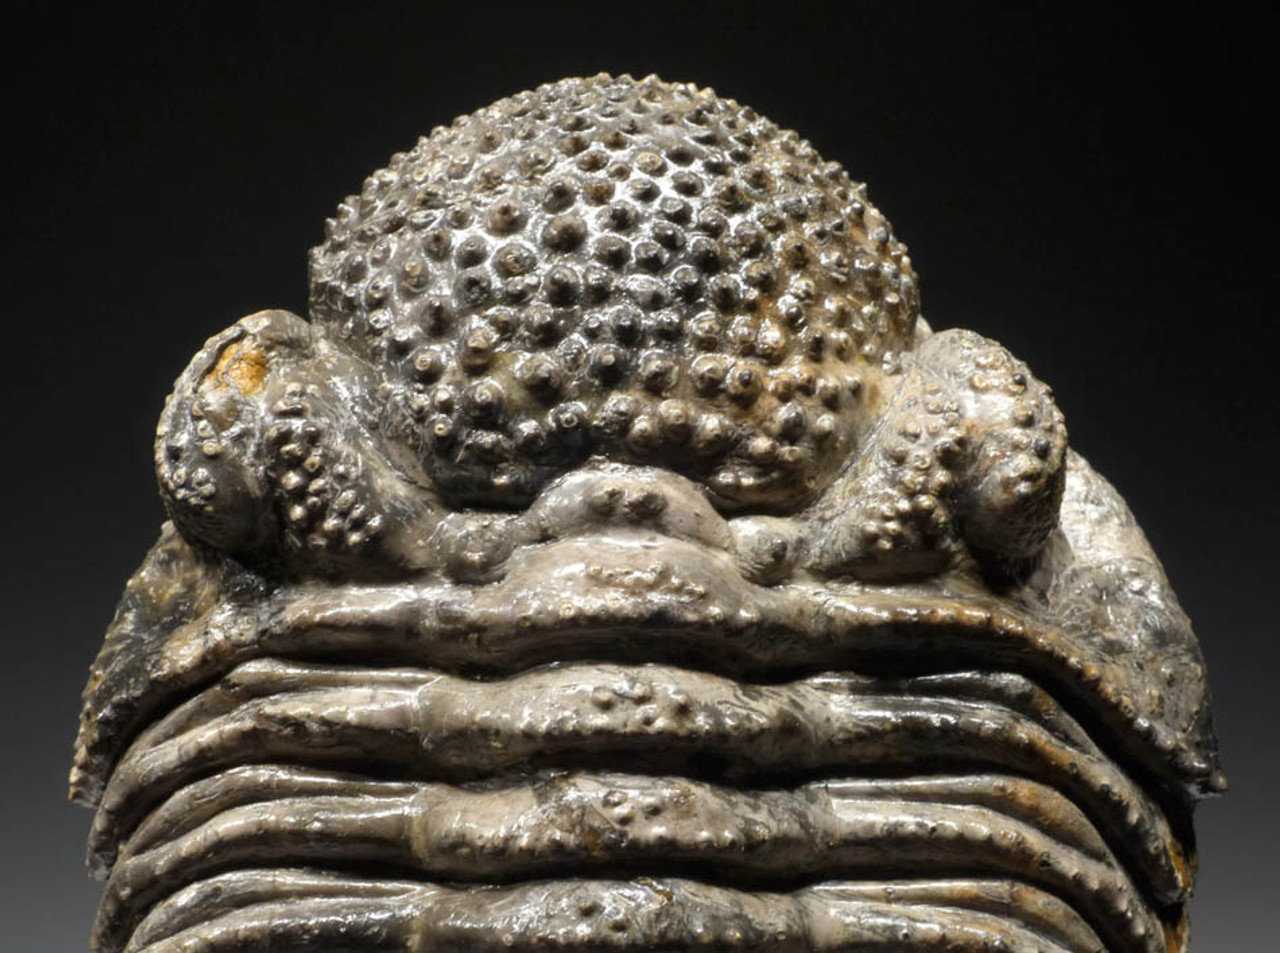 TR10-028 - AMAZING RARE COLORED MOTTLED CREAM FLOATING DROTOPS TRILOBITE WITH VISIBLE MOUTH